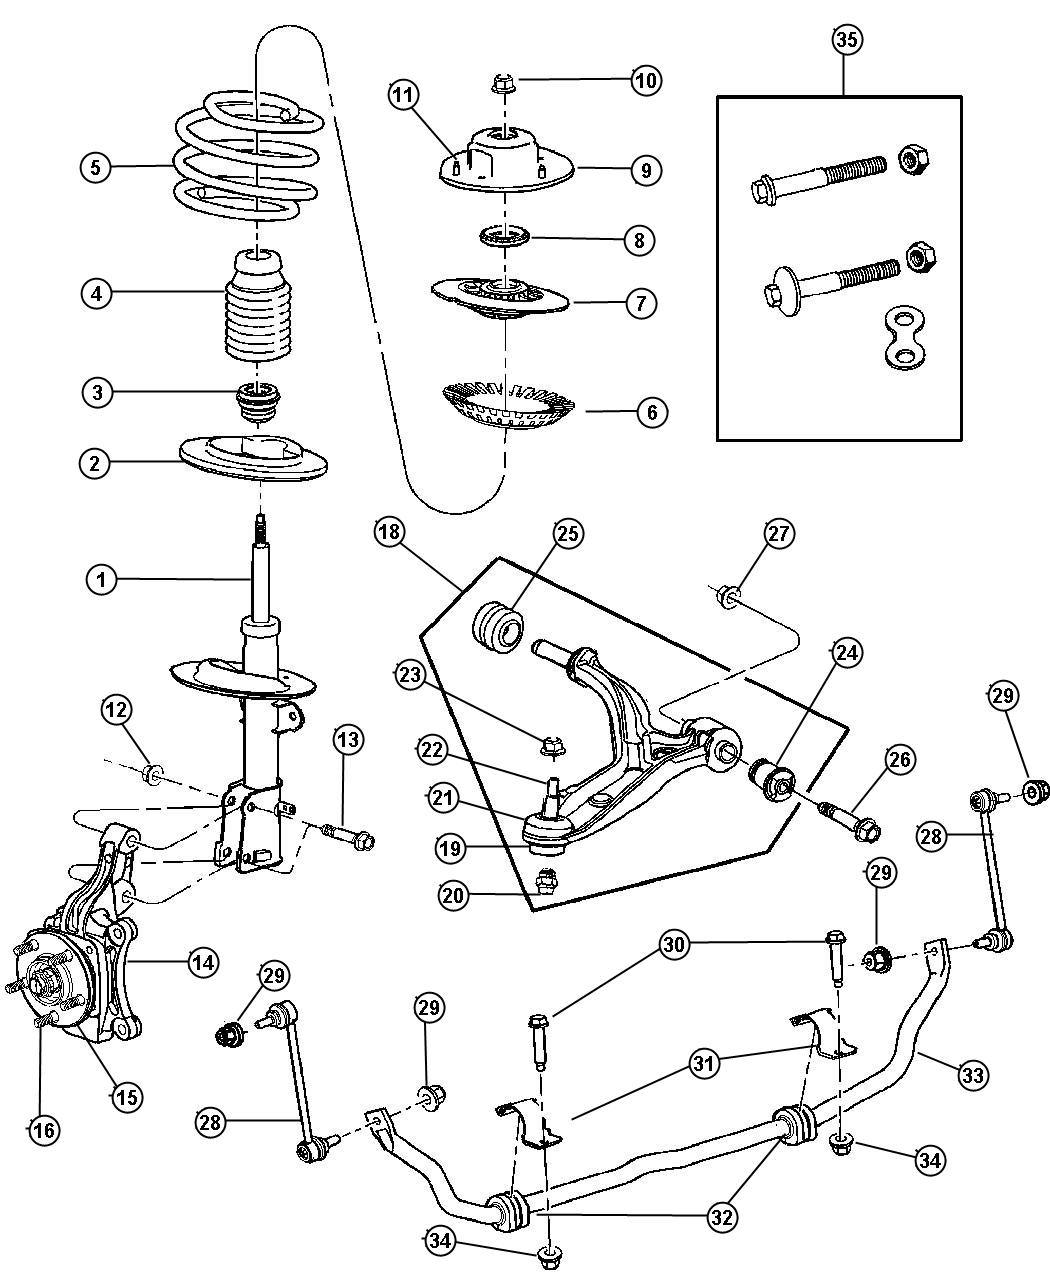 door on 2008 dodge avenger wiring diagram with Parts For 2007 Dodge Grand Caravan on 2000 Grand Marquis Heater Valve Location 168135 together with 6gpm3 Dodge Grand Caravan Le Need Change Blend Door Actuator also Dodge Nitro Wiring Diagrams moreover Dodge Nitro Heater Core Diagram likewise 95 Dodge Avenger Fuse Diagram.